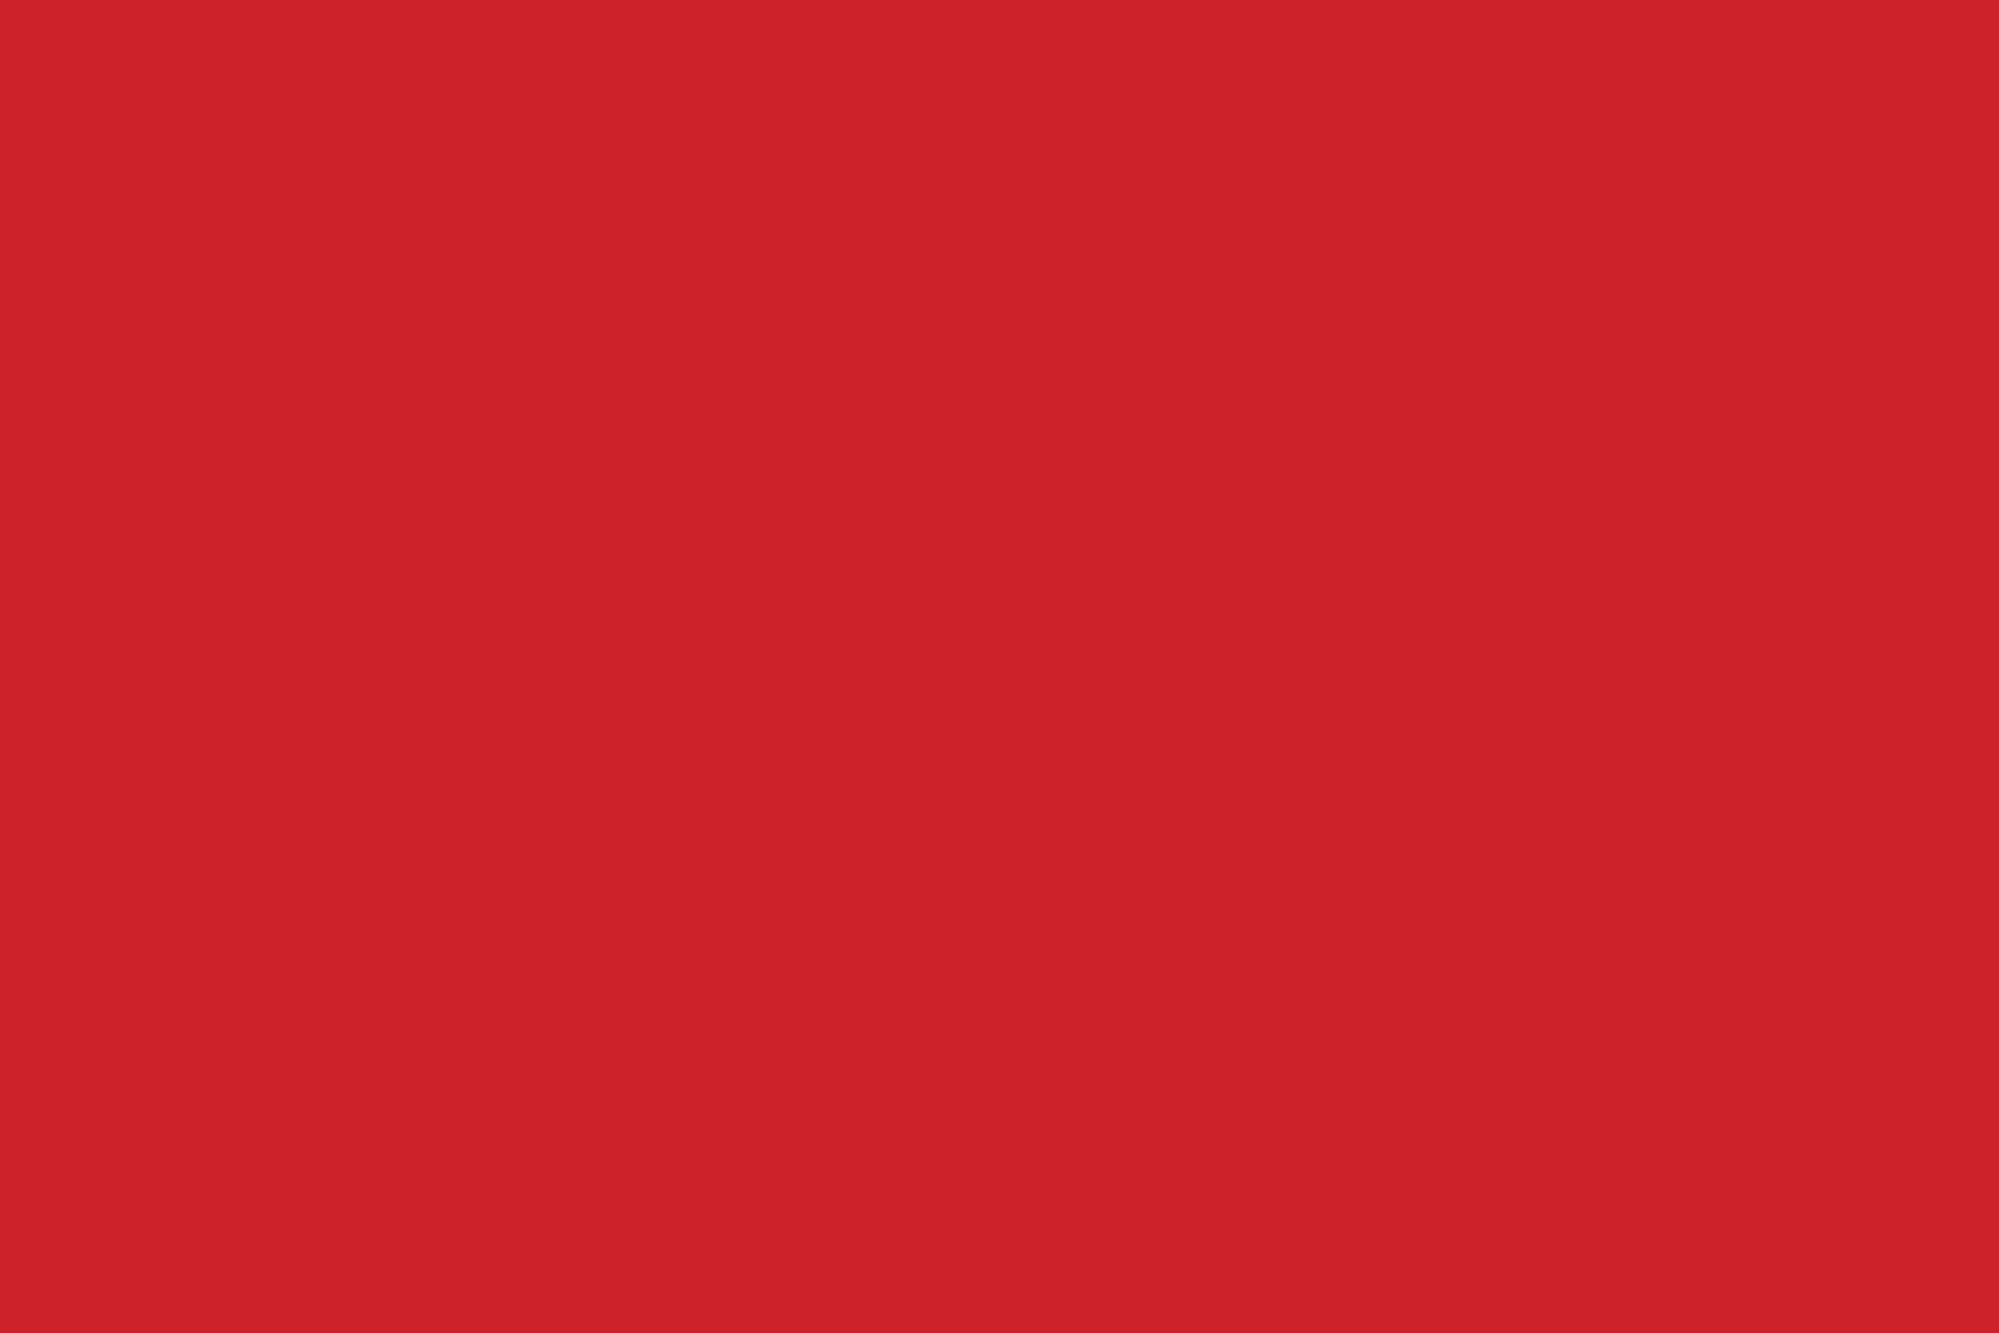 red_background